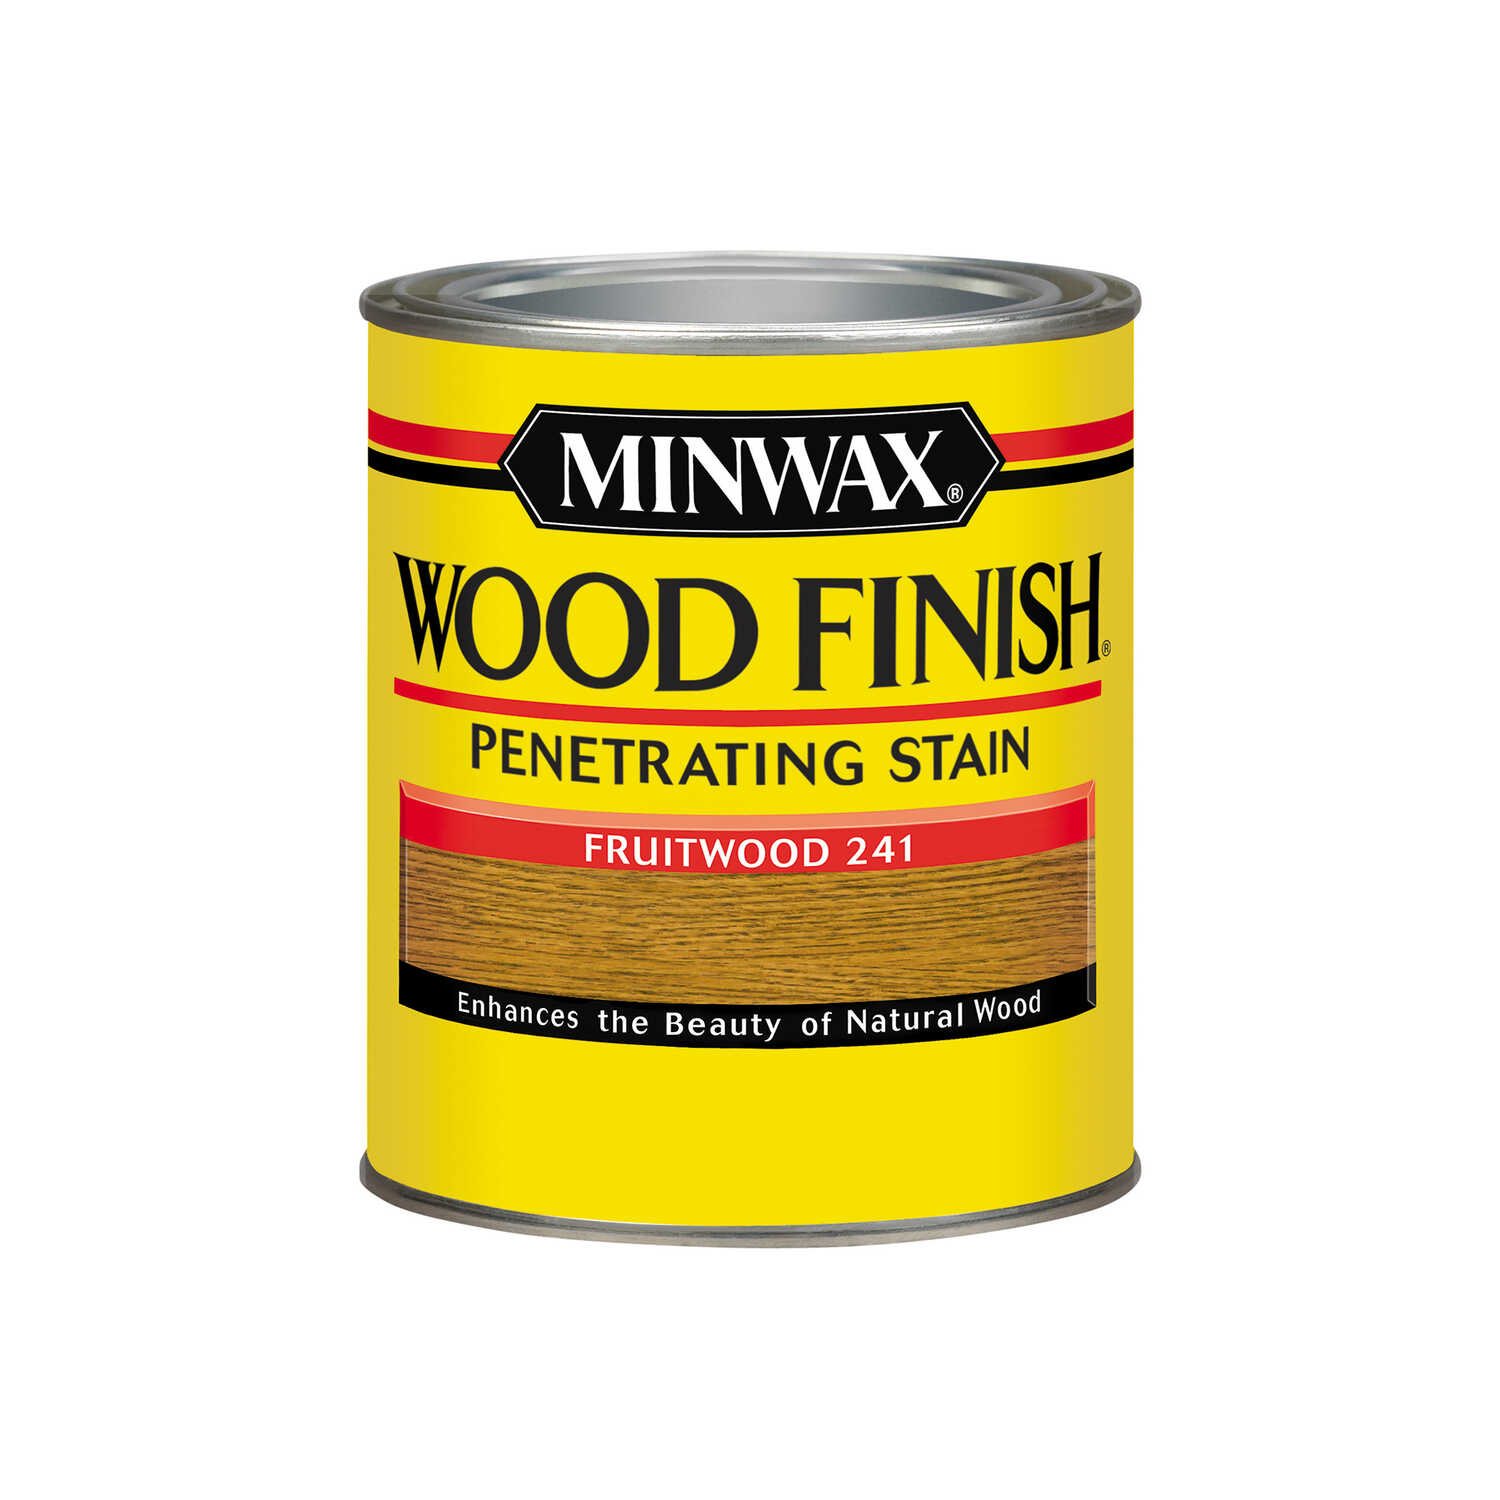 Minwax  Wood Finish  Semi-Transparent  Fruitwood  Oil-Based  Oil  Stain  1 qt.